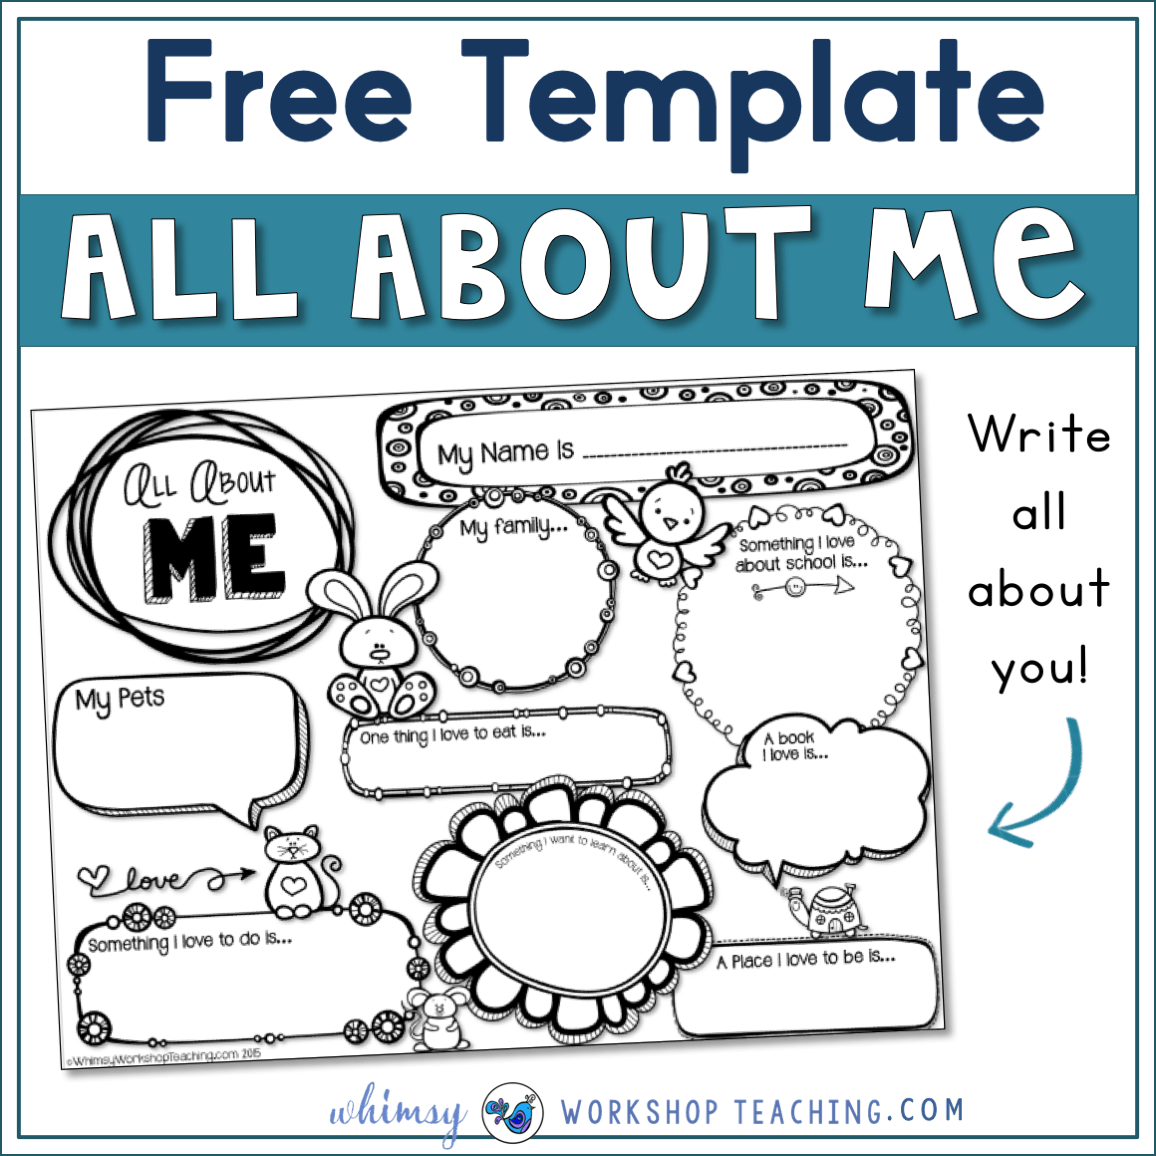 About Me Writing Template